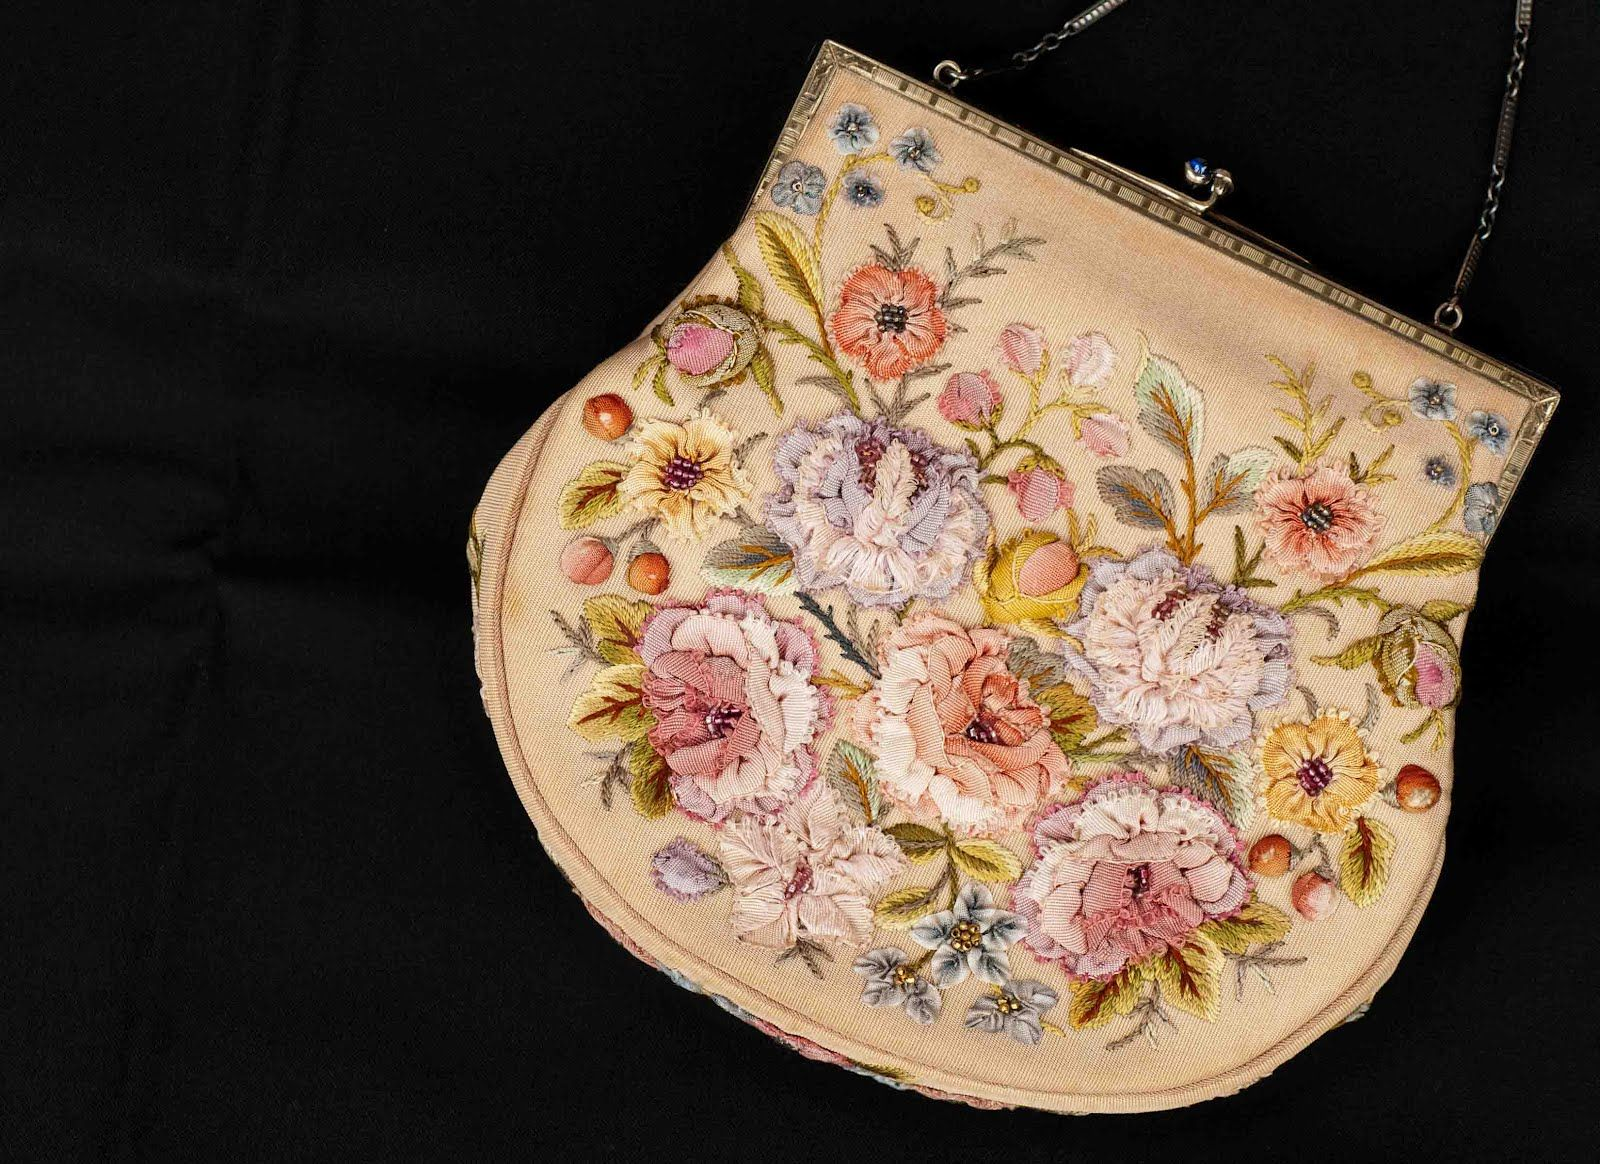 Antique purse  Plays With Needles: ribbonwork  More pictures and a lovely article how we look at what we see.